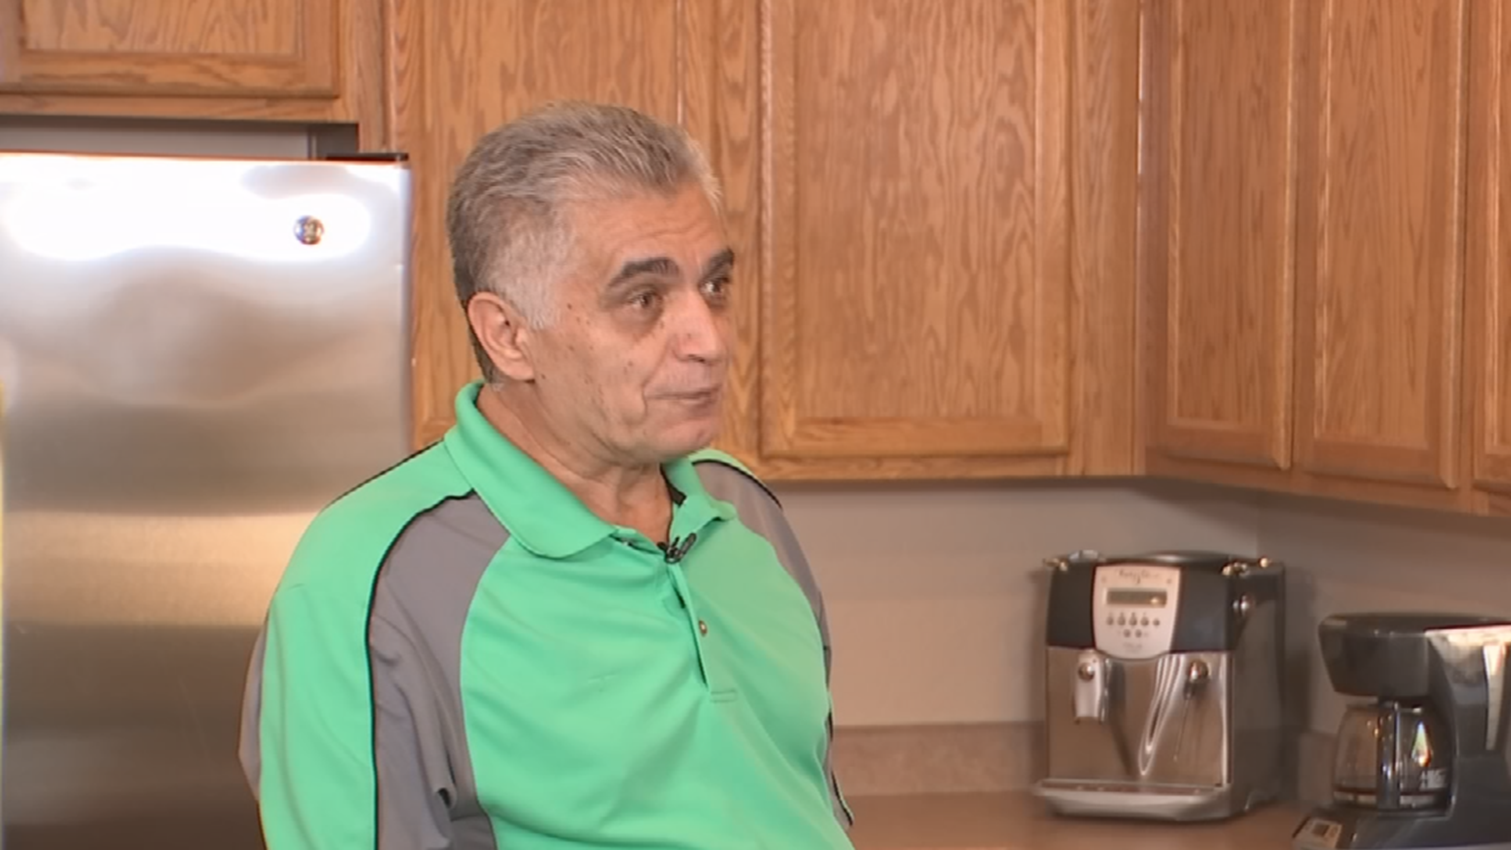 Mario Perfetti  says he is thrilled that Total Protect Home Warranty not only returned his deductible, which they didn't have to do, but they also gave him money to replace his broken microwave for a total of $441. (Source: 3TV)